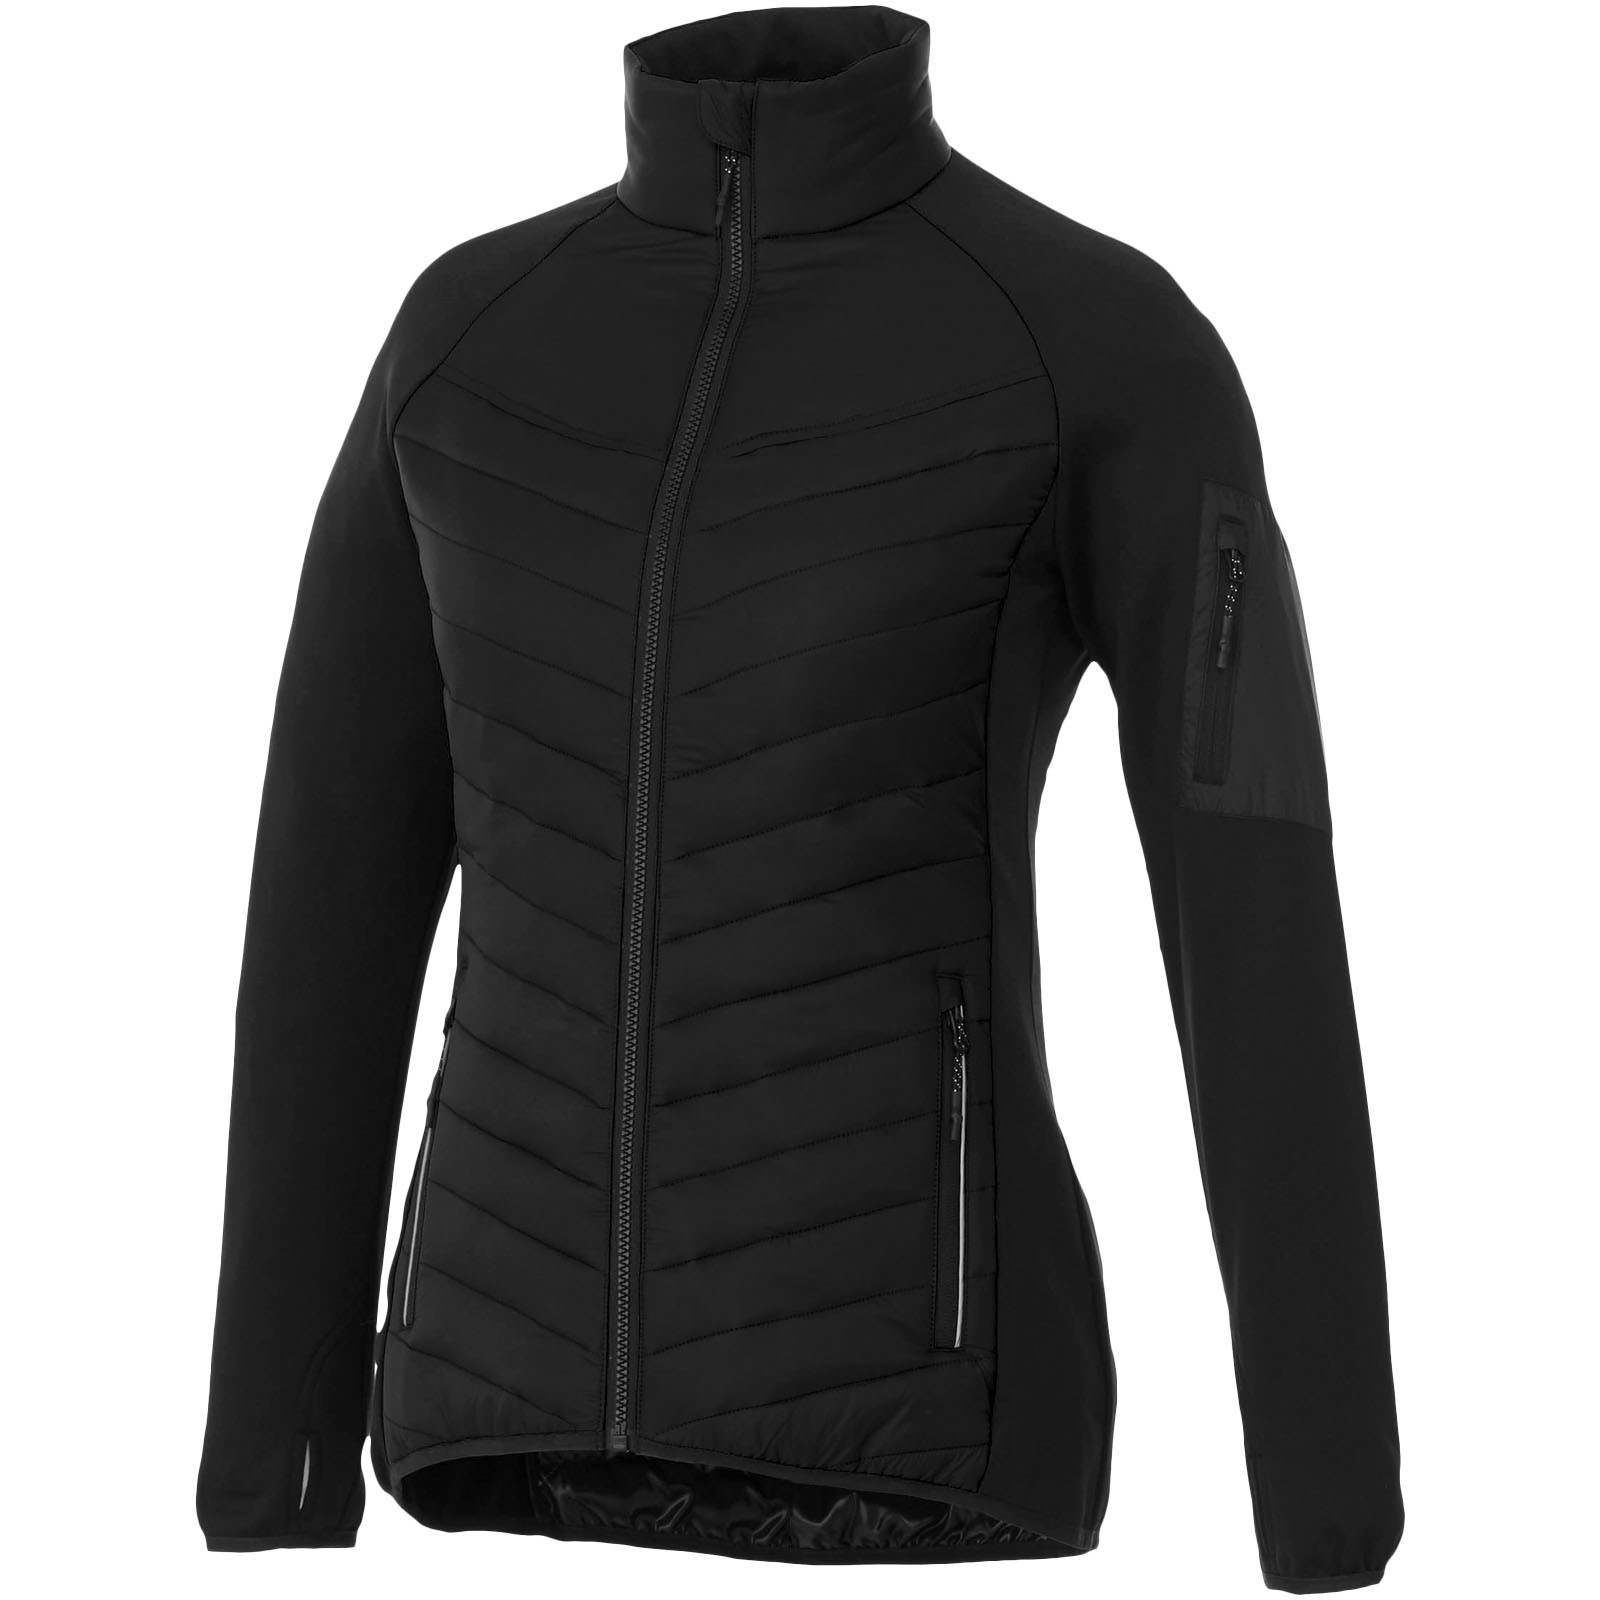 Banff hybrid insulated ladies jacket - Solid Black / XS